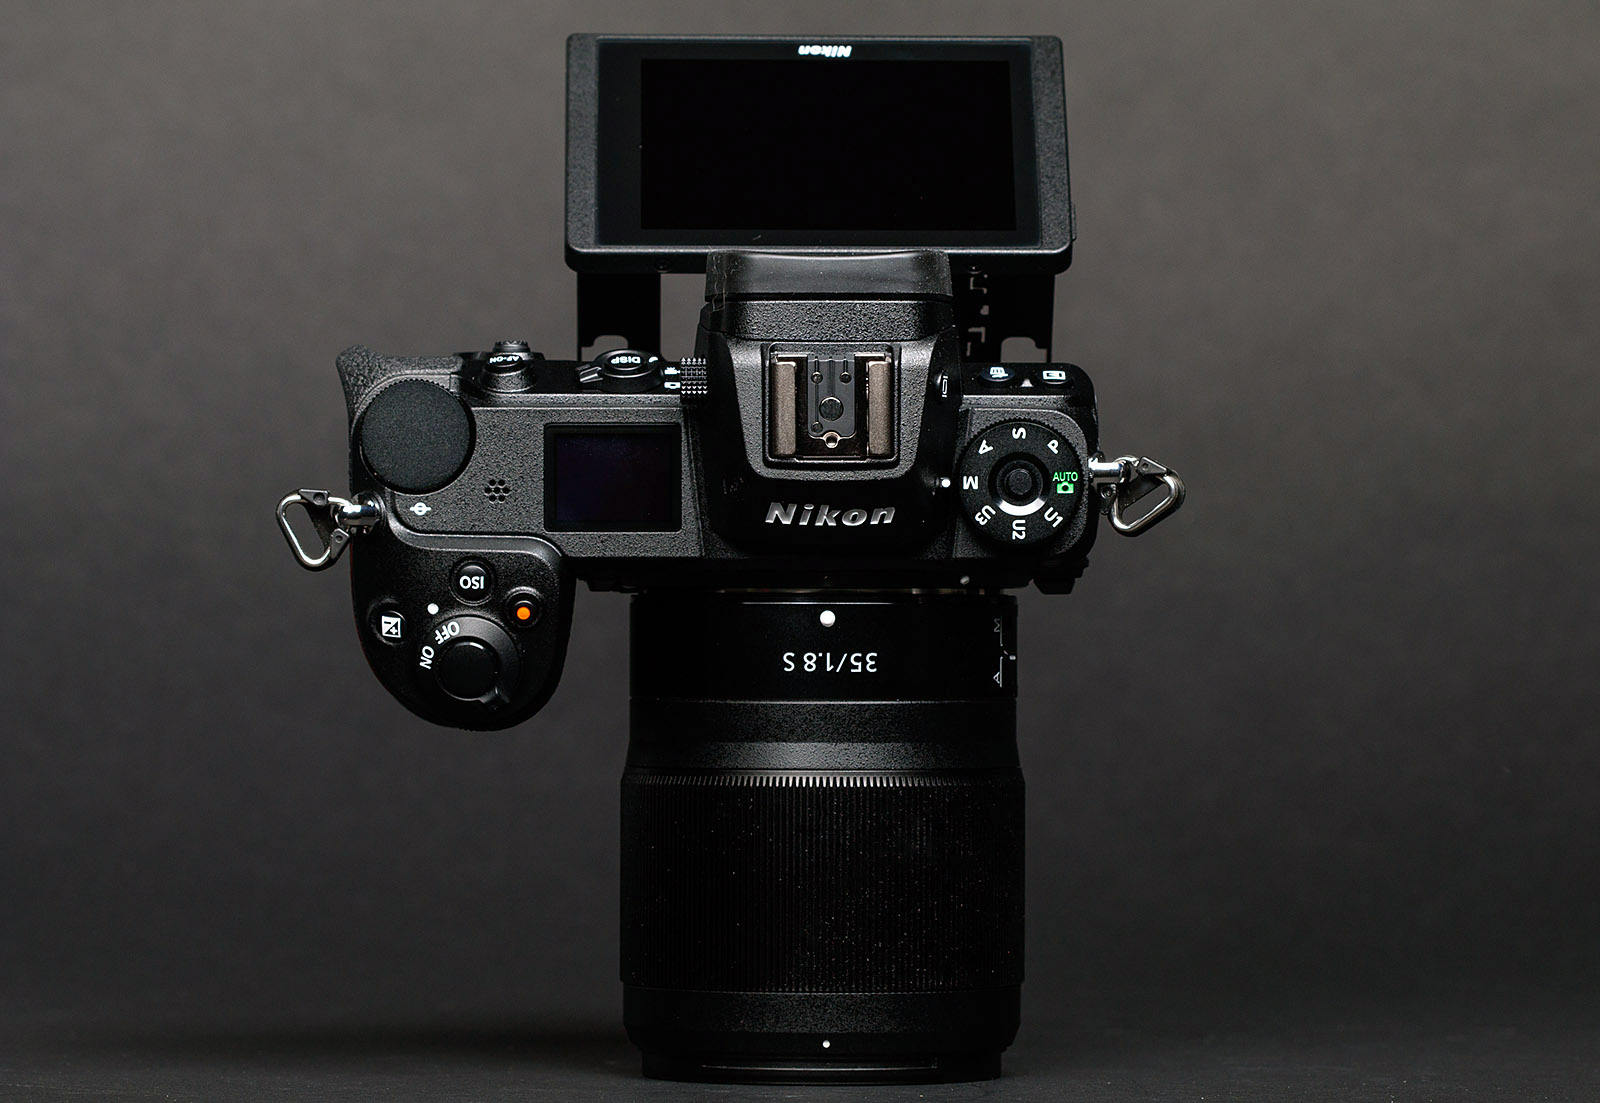 The Nikon Z is a big step for Nikon but they need to keep